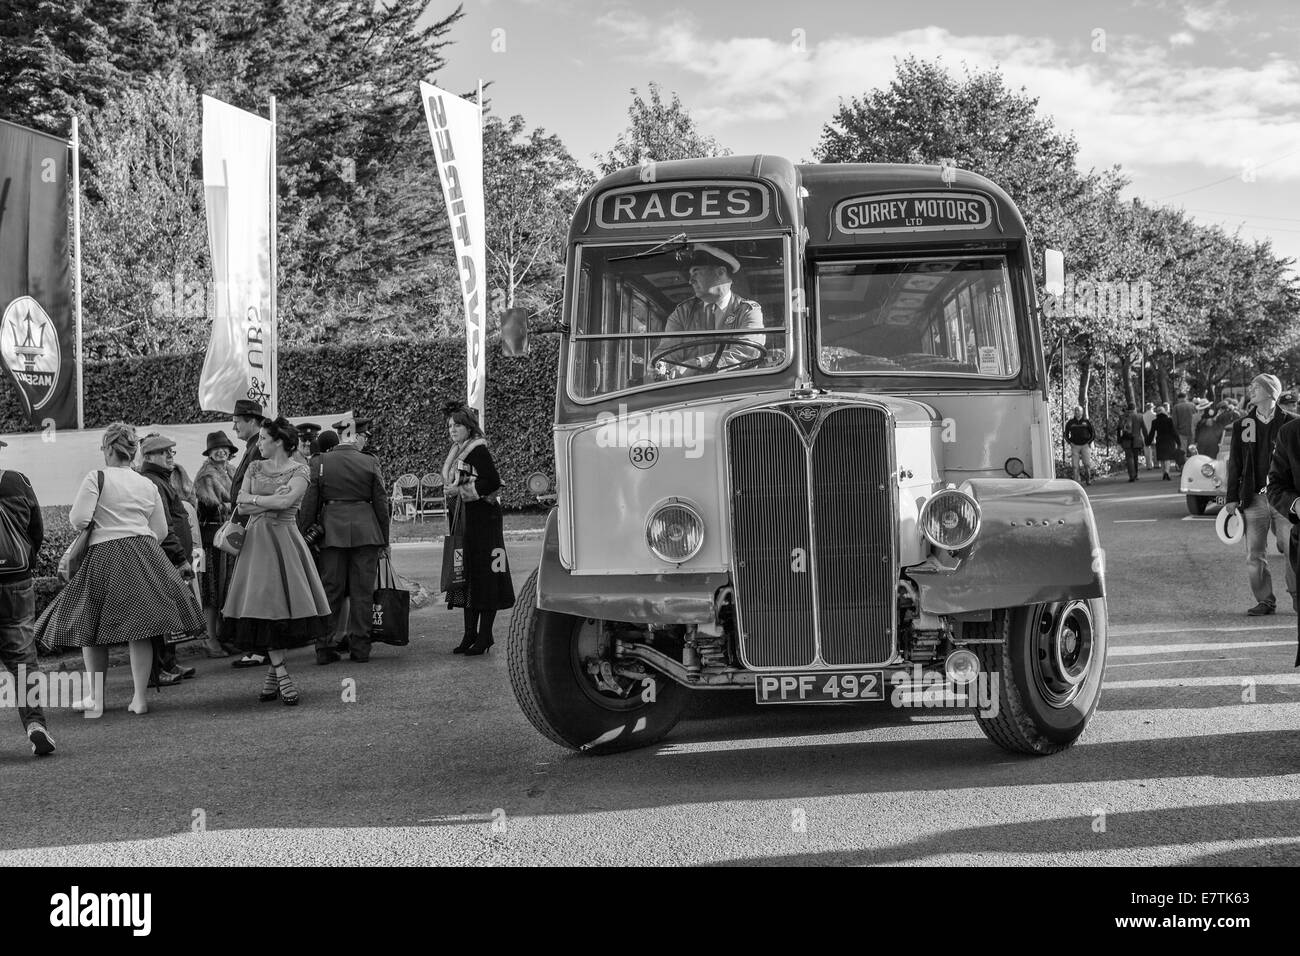 Old bus with ladies going to the races - Stock Image